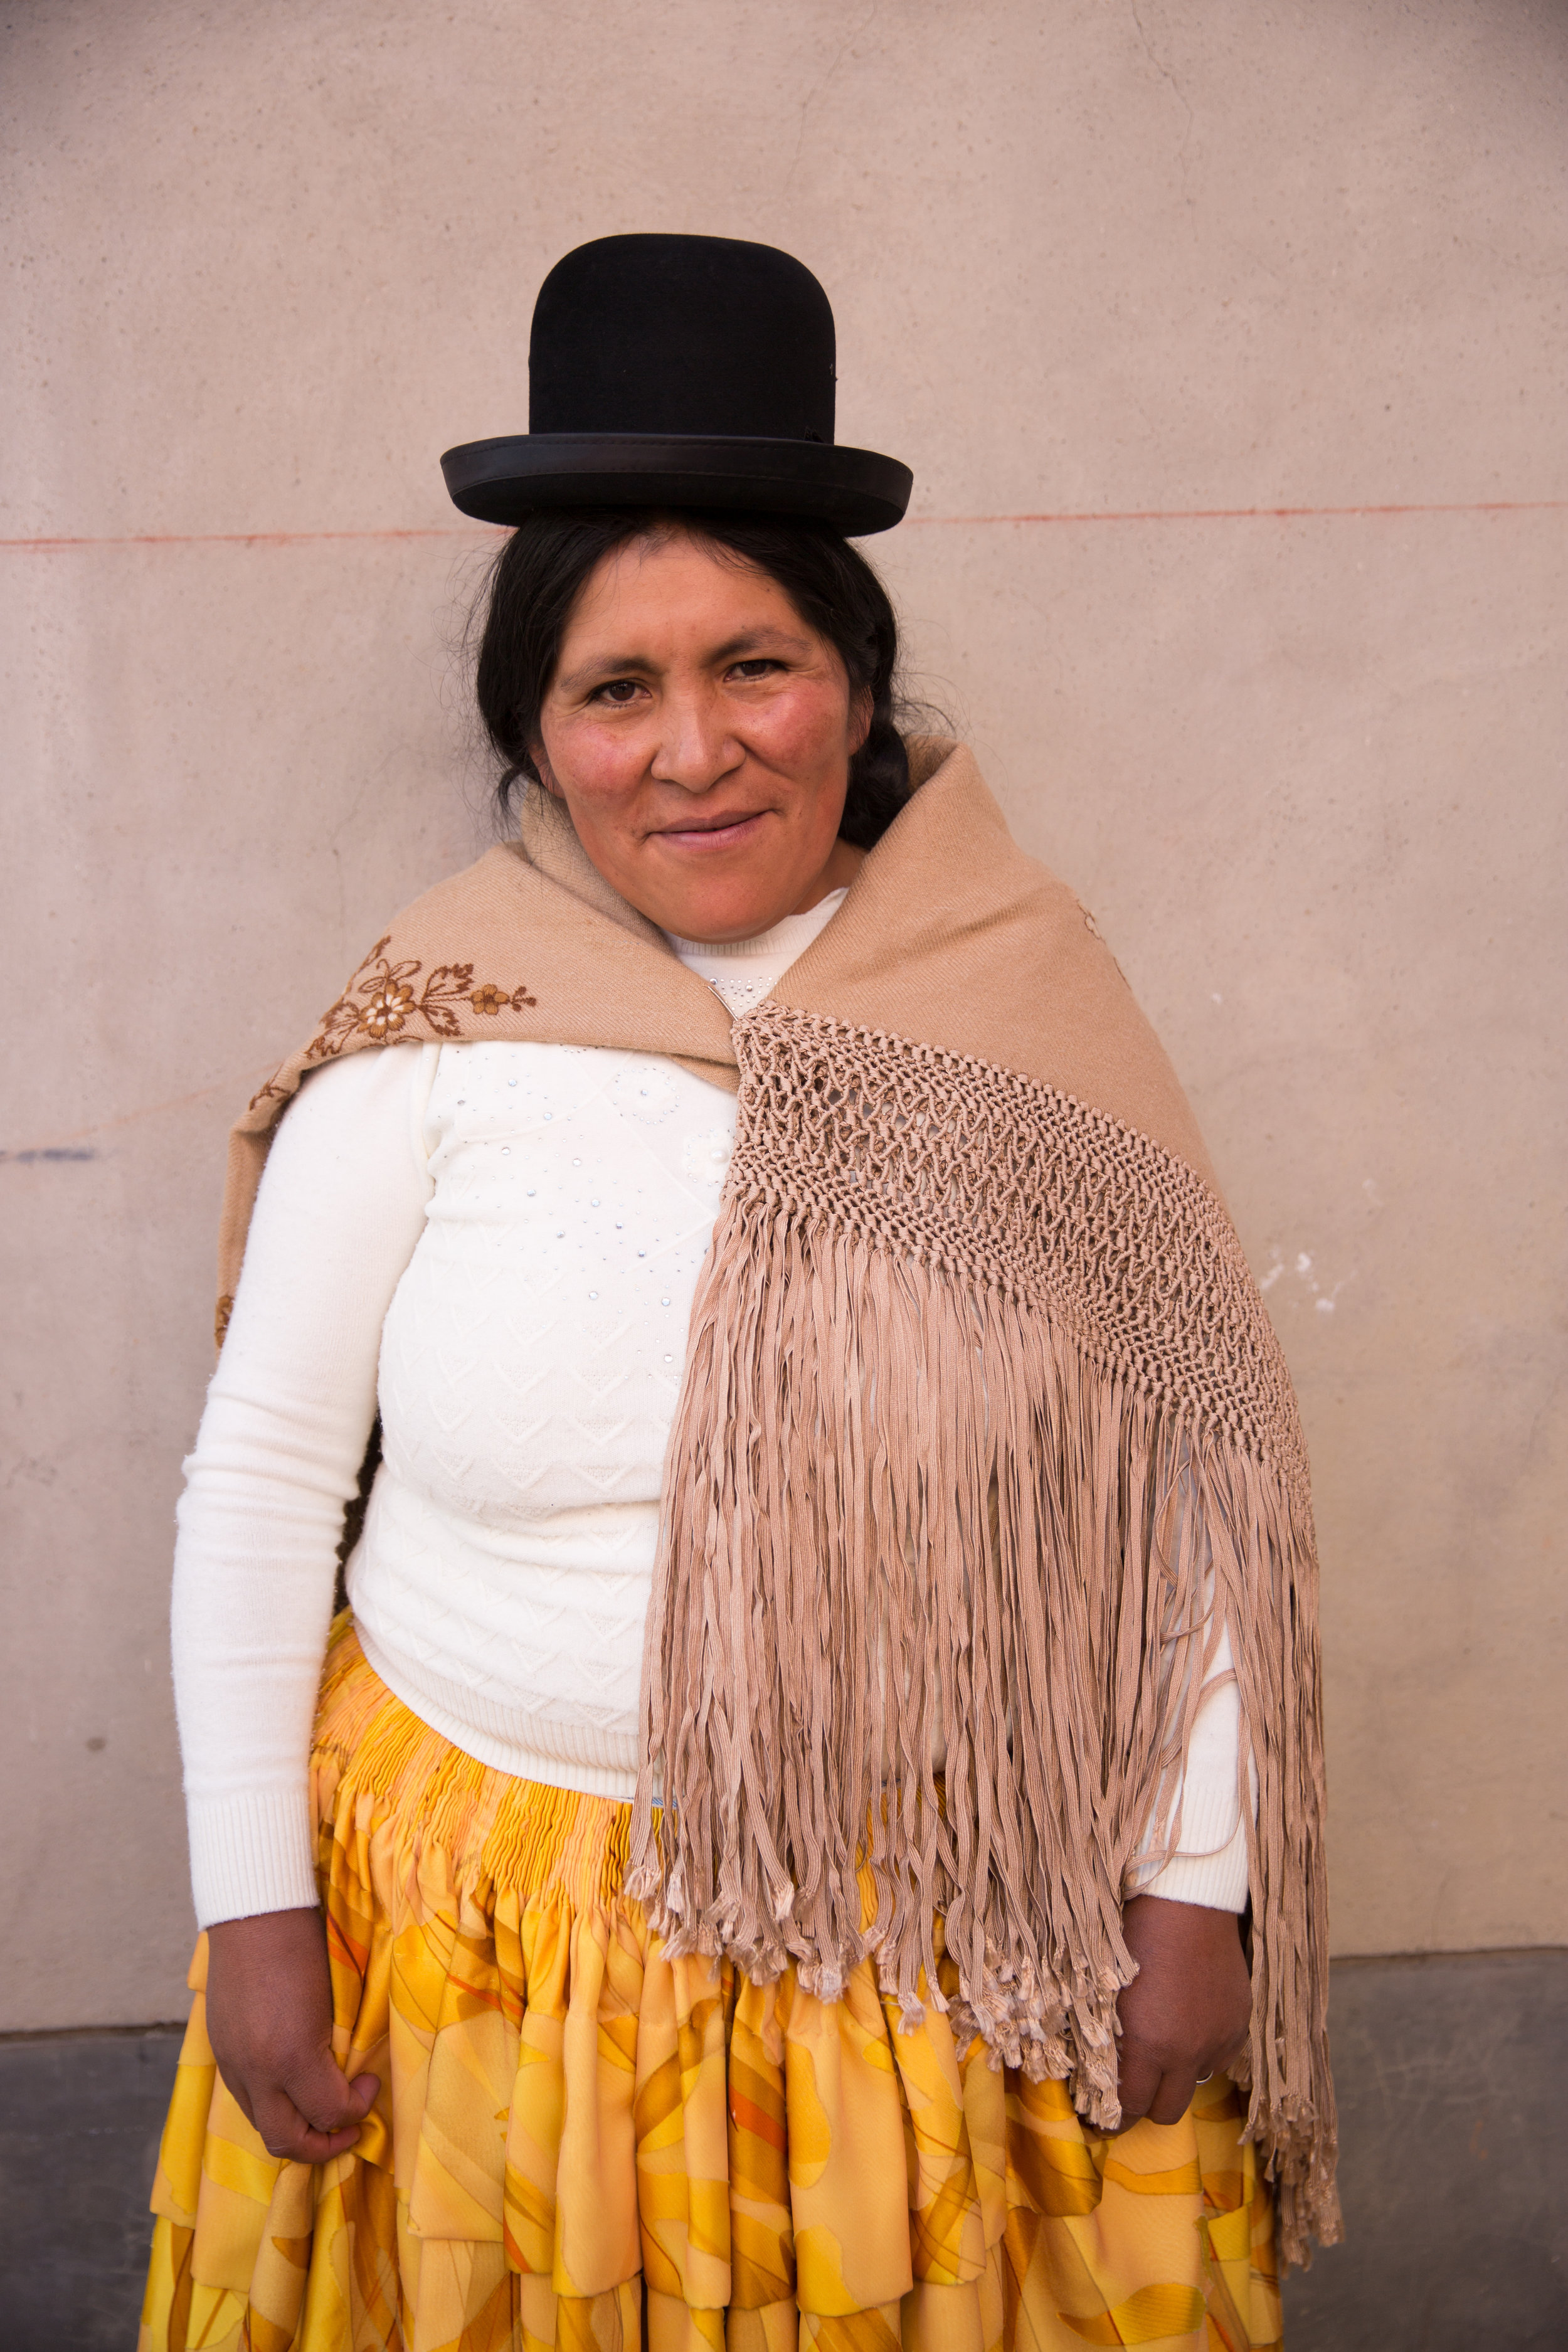 Meet artisan Ana Quea. Often the color combinations of the artisans outfits incredibly inspiring. We incorporate and use of the rayon tape yarn that the artisans macramé their shawls from within some of our ELEVEN SIX pieces.